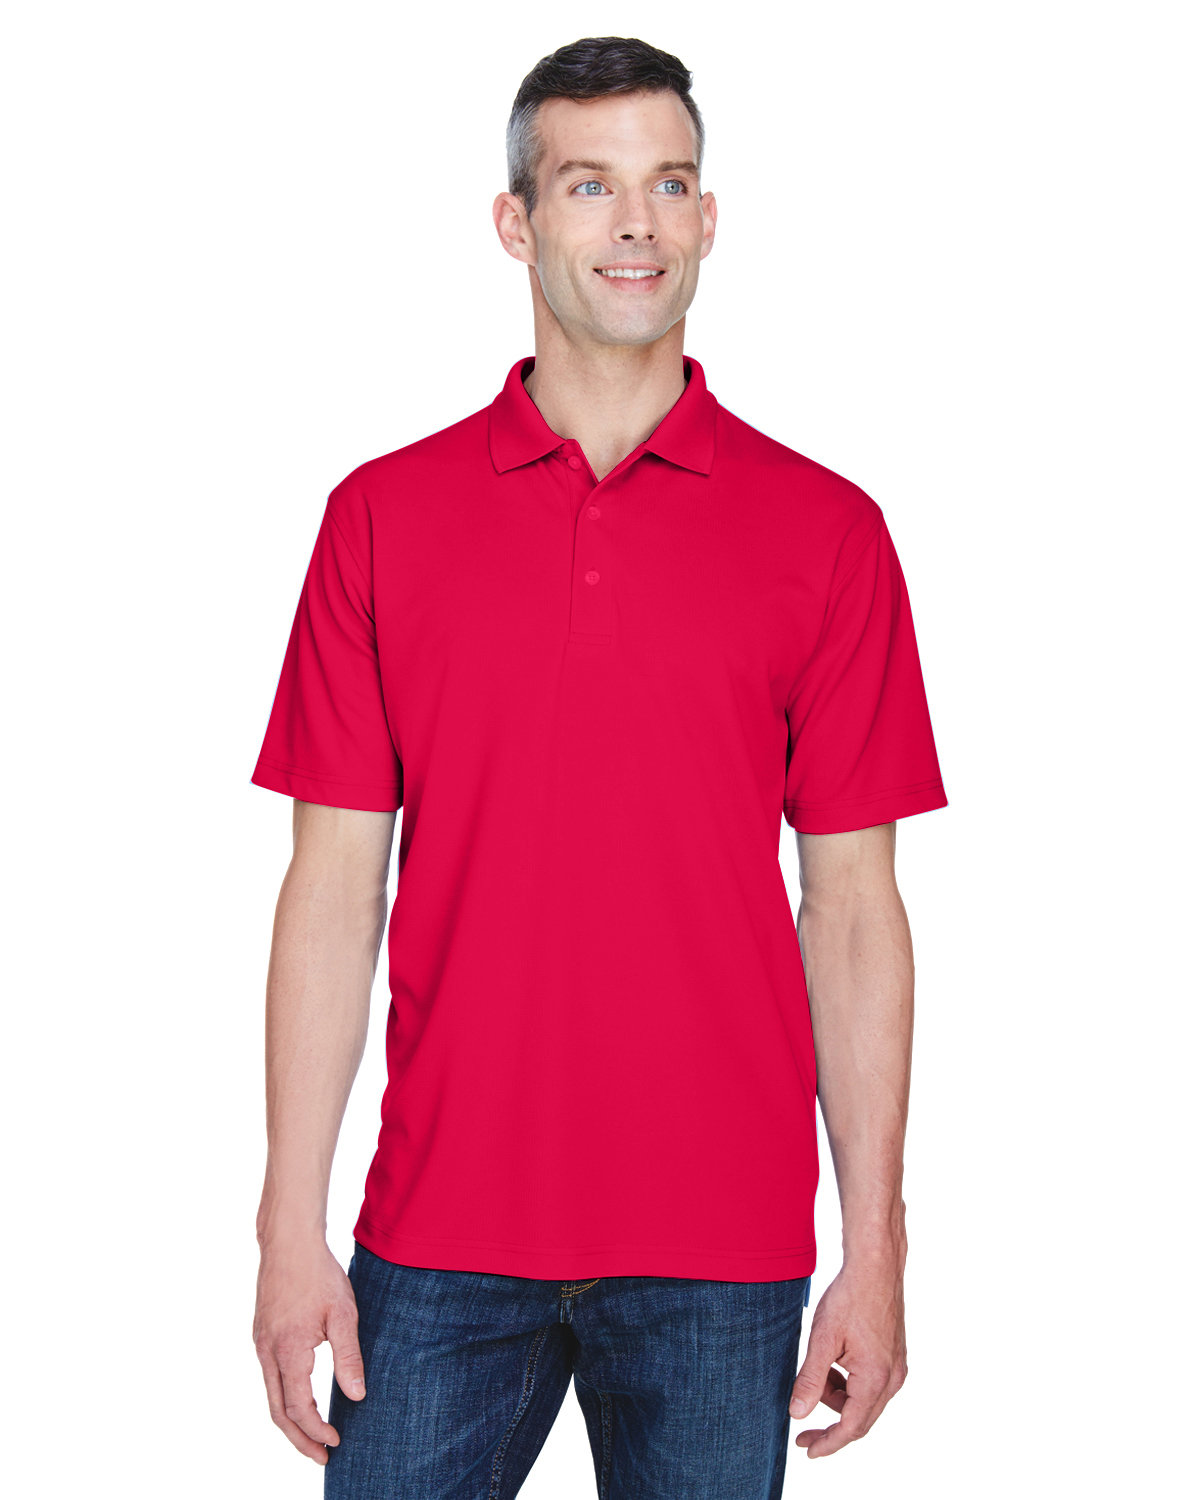 UltraClub Men's Cool & Dry Stain-Release Performance Polo RED